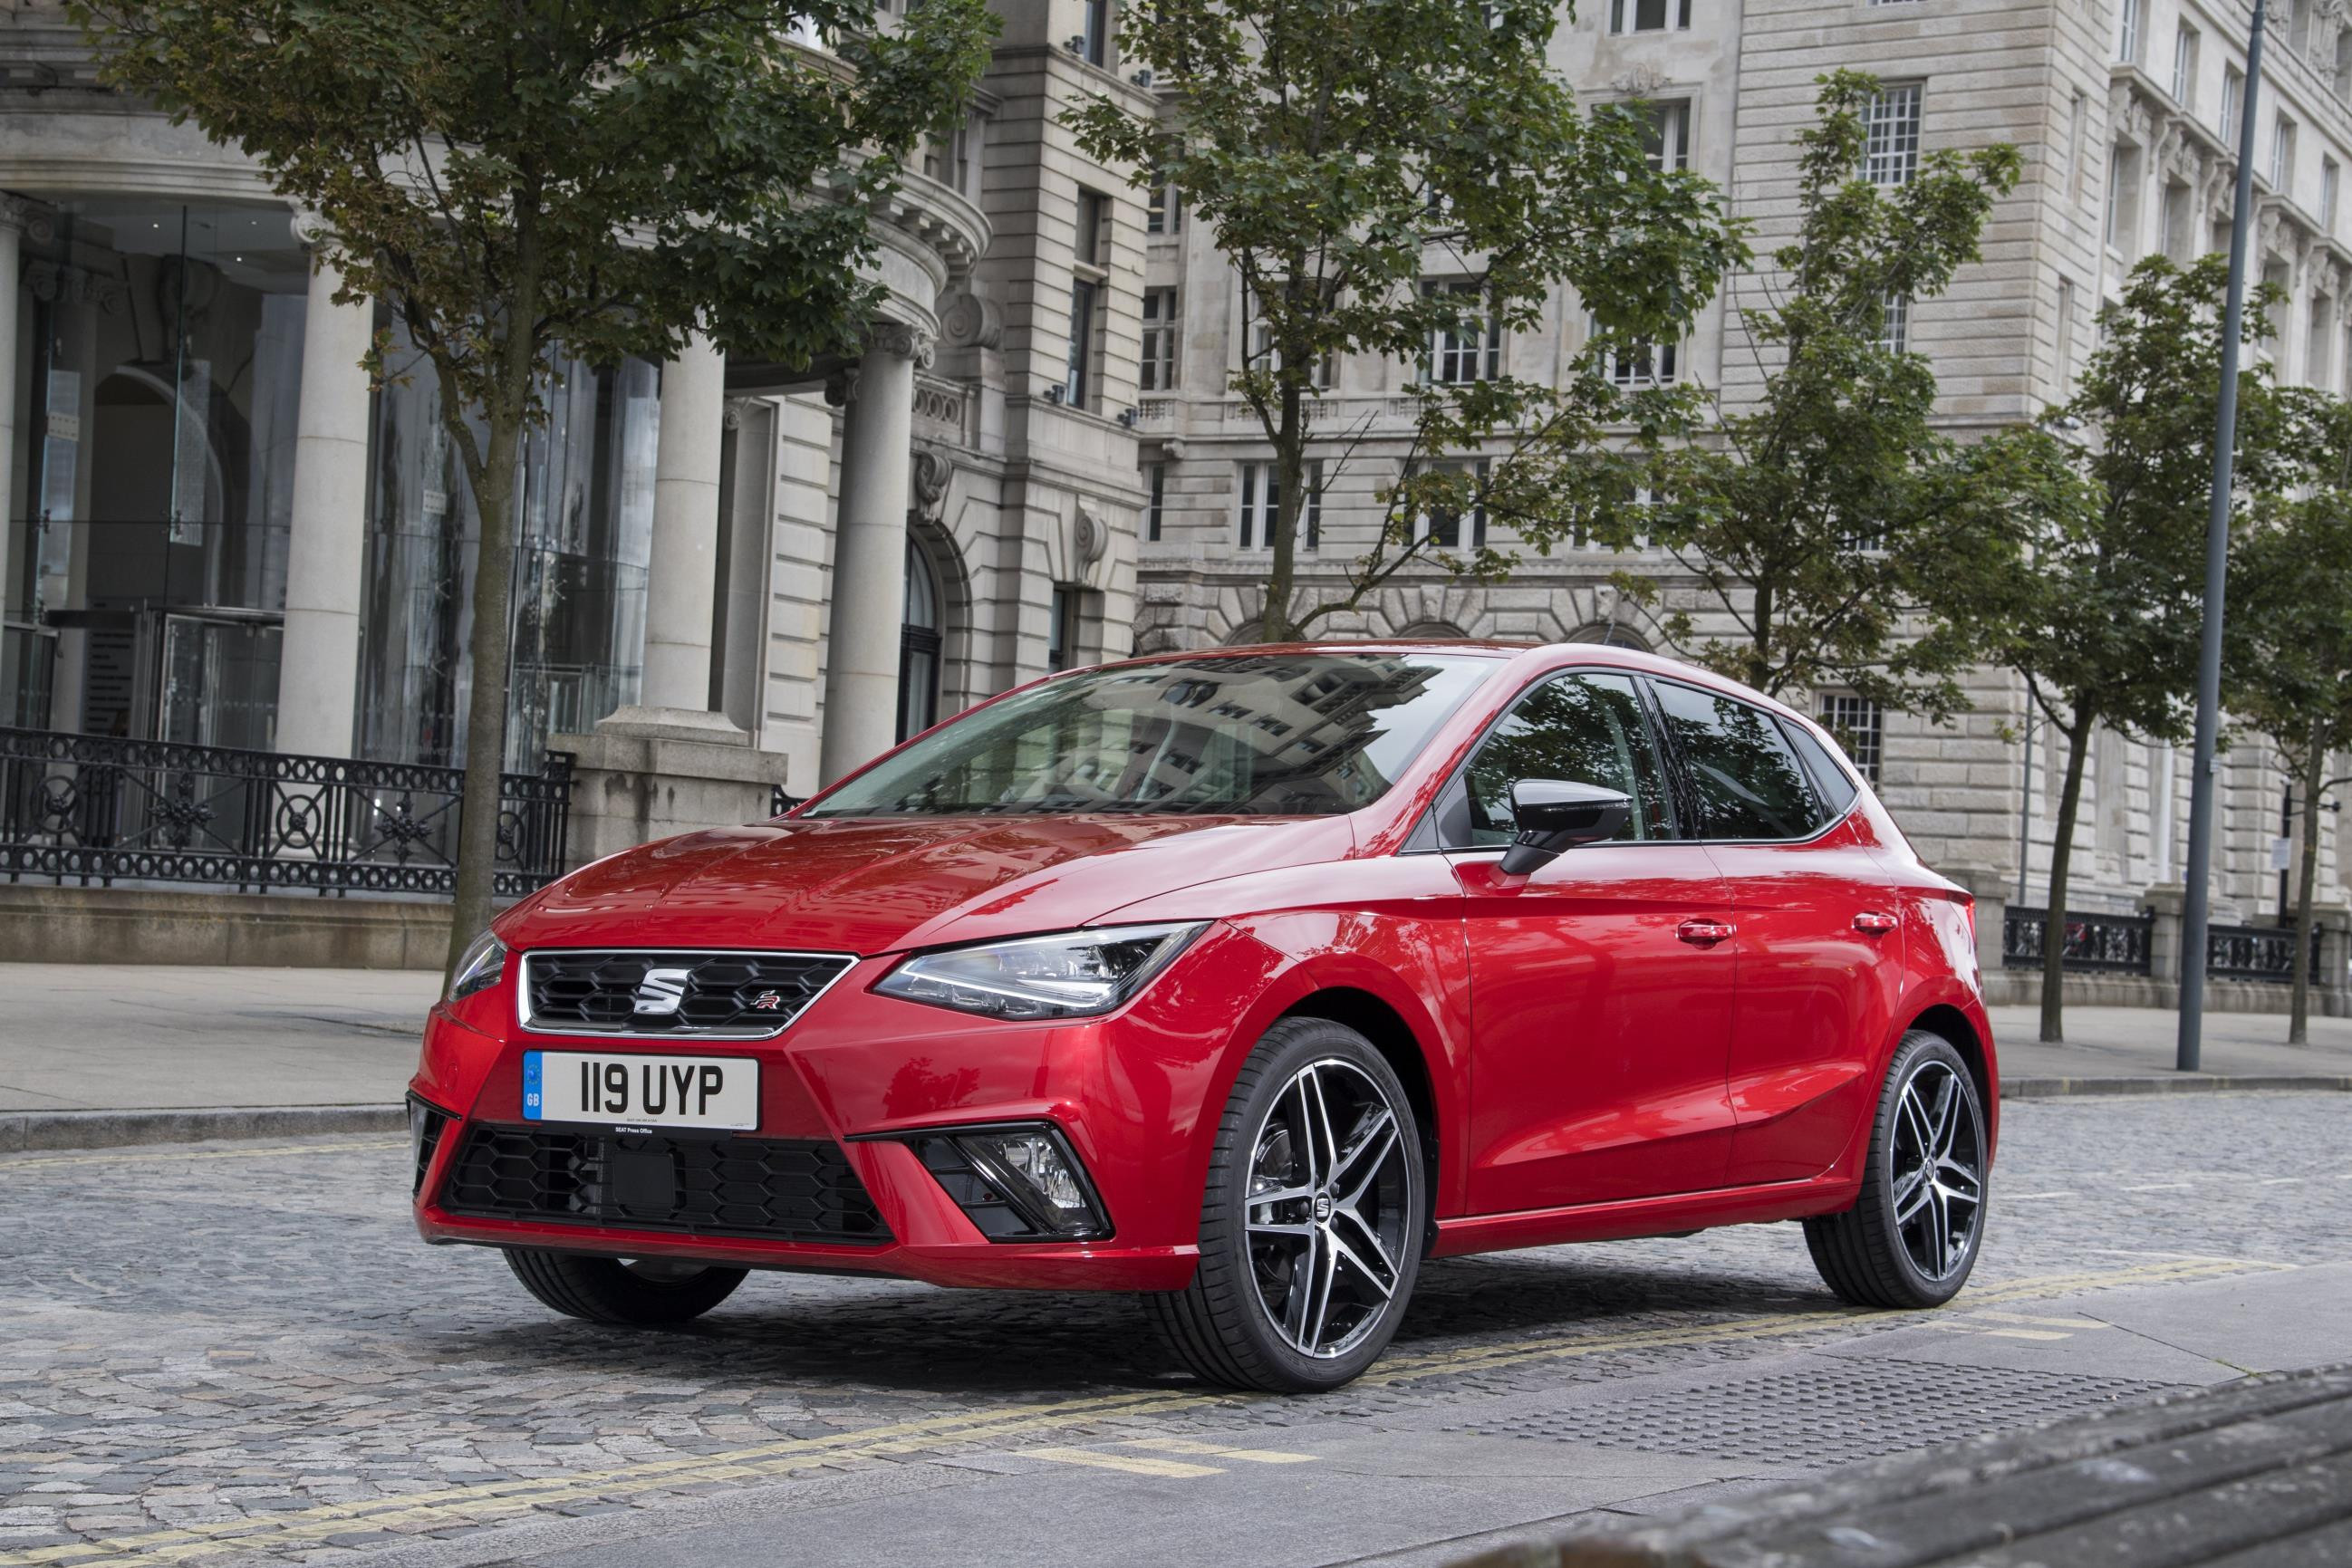 Red SEAT Ibiza on continental cobbled street